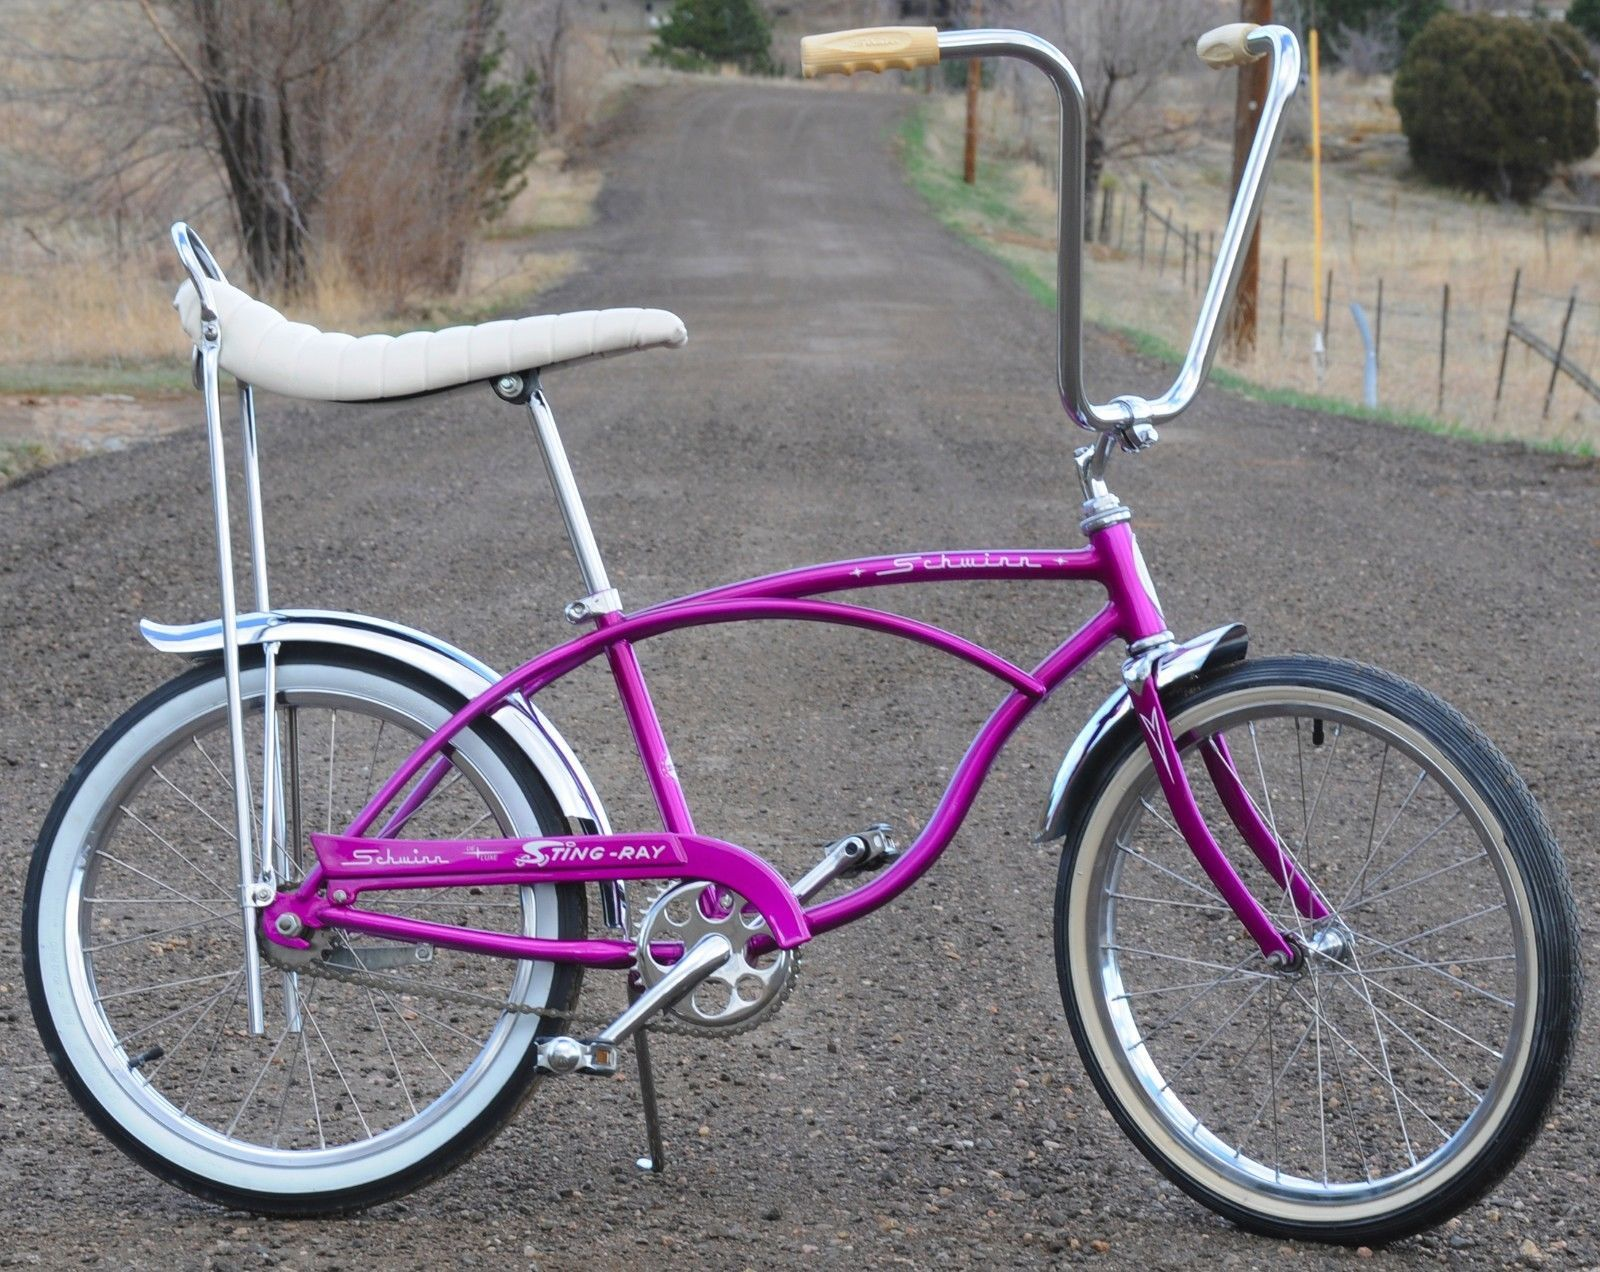 07c933ac74a 67 Schwinn Stingray Deluxe | Pedal Power | Bicycle, Classic bikes ...